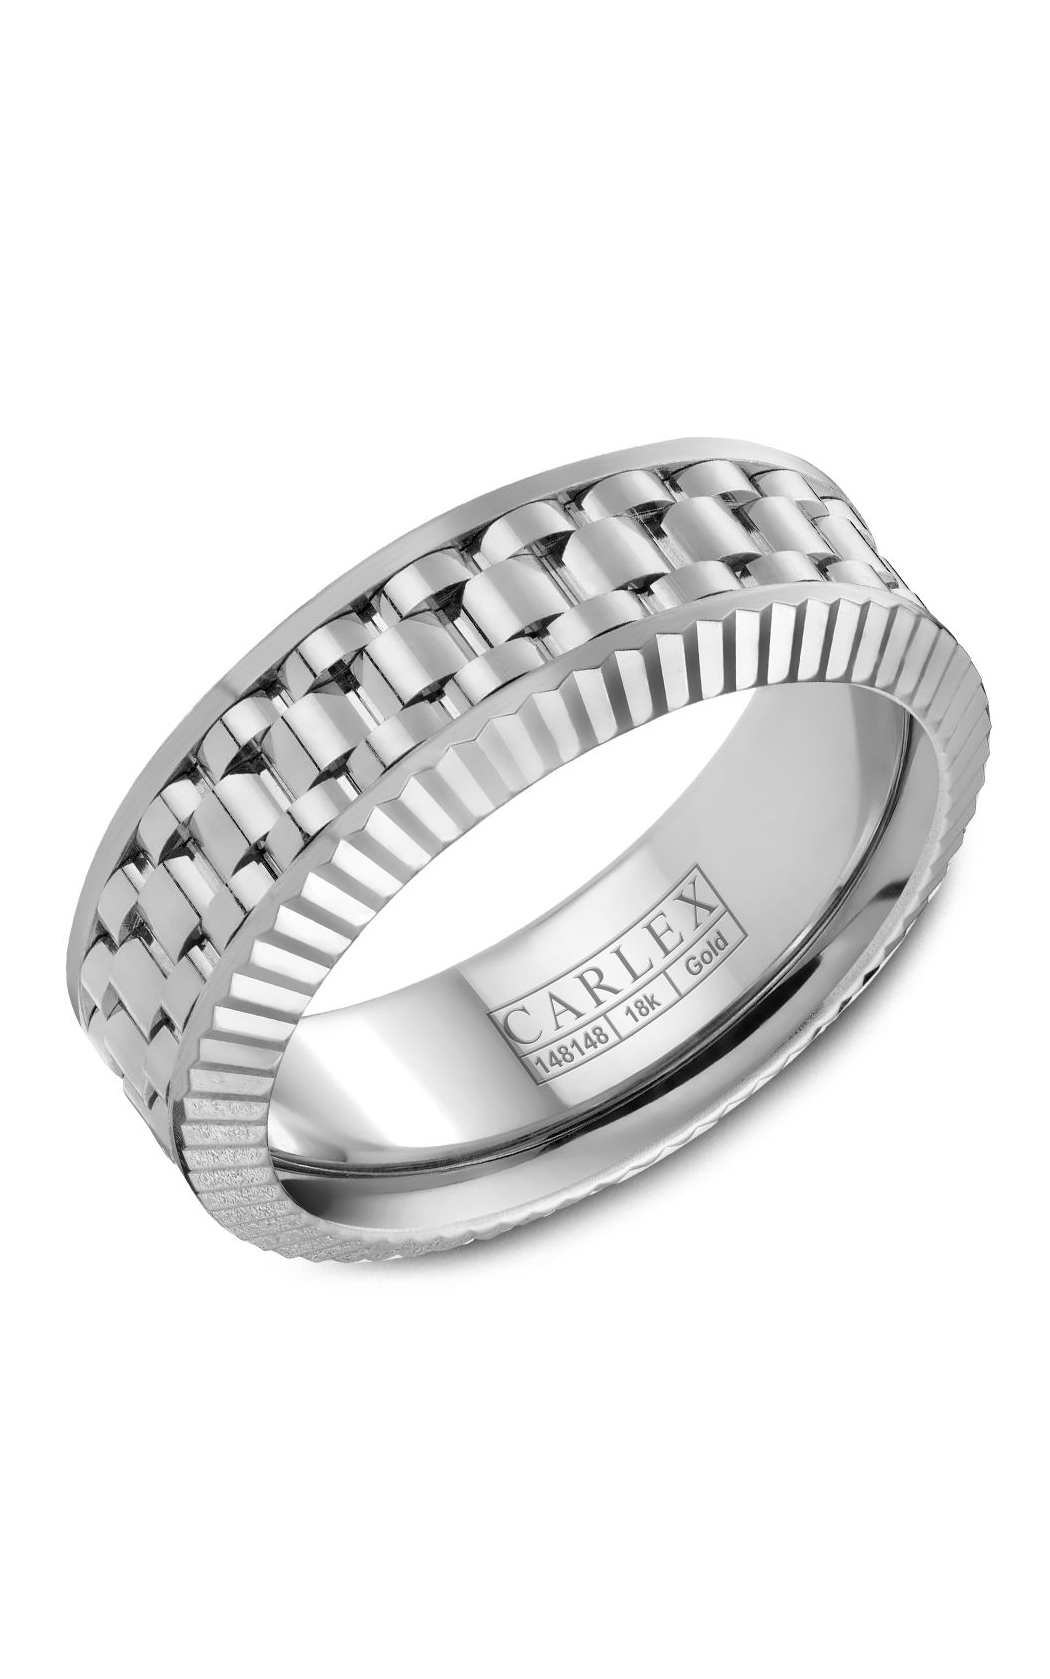 Carlex G3 Men's Wedding Band  CX3-0019WWW product image